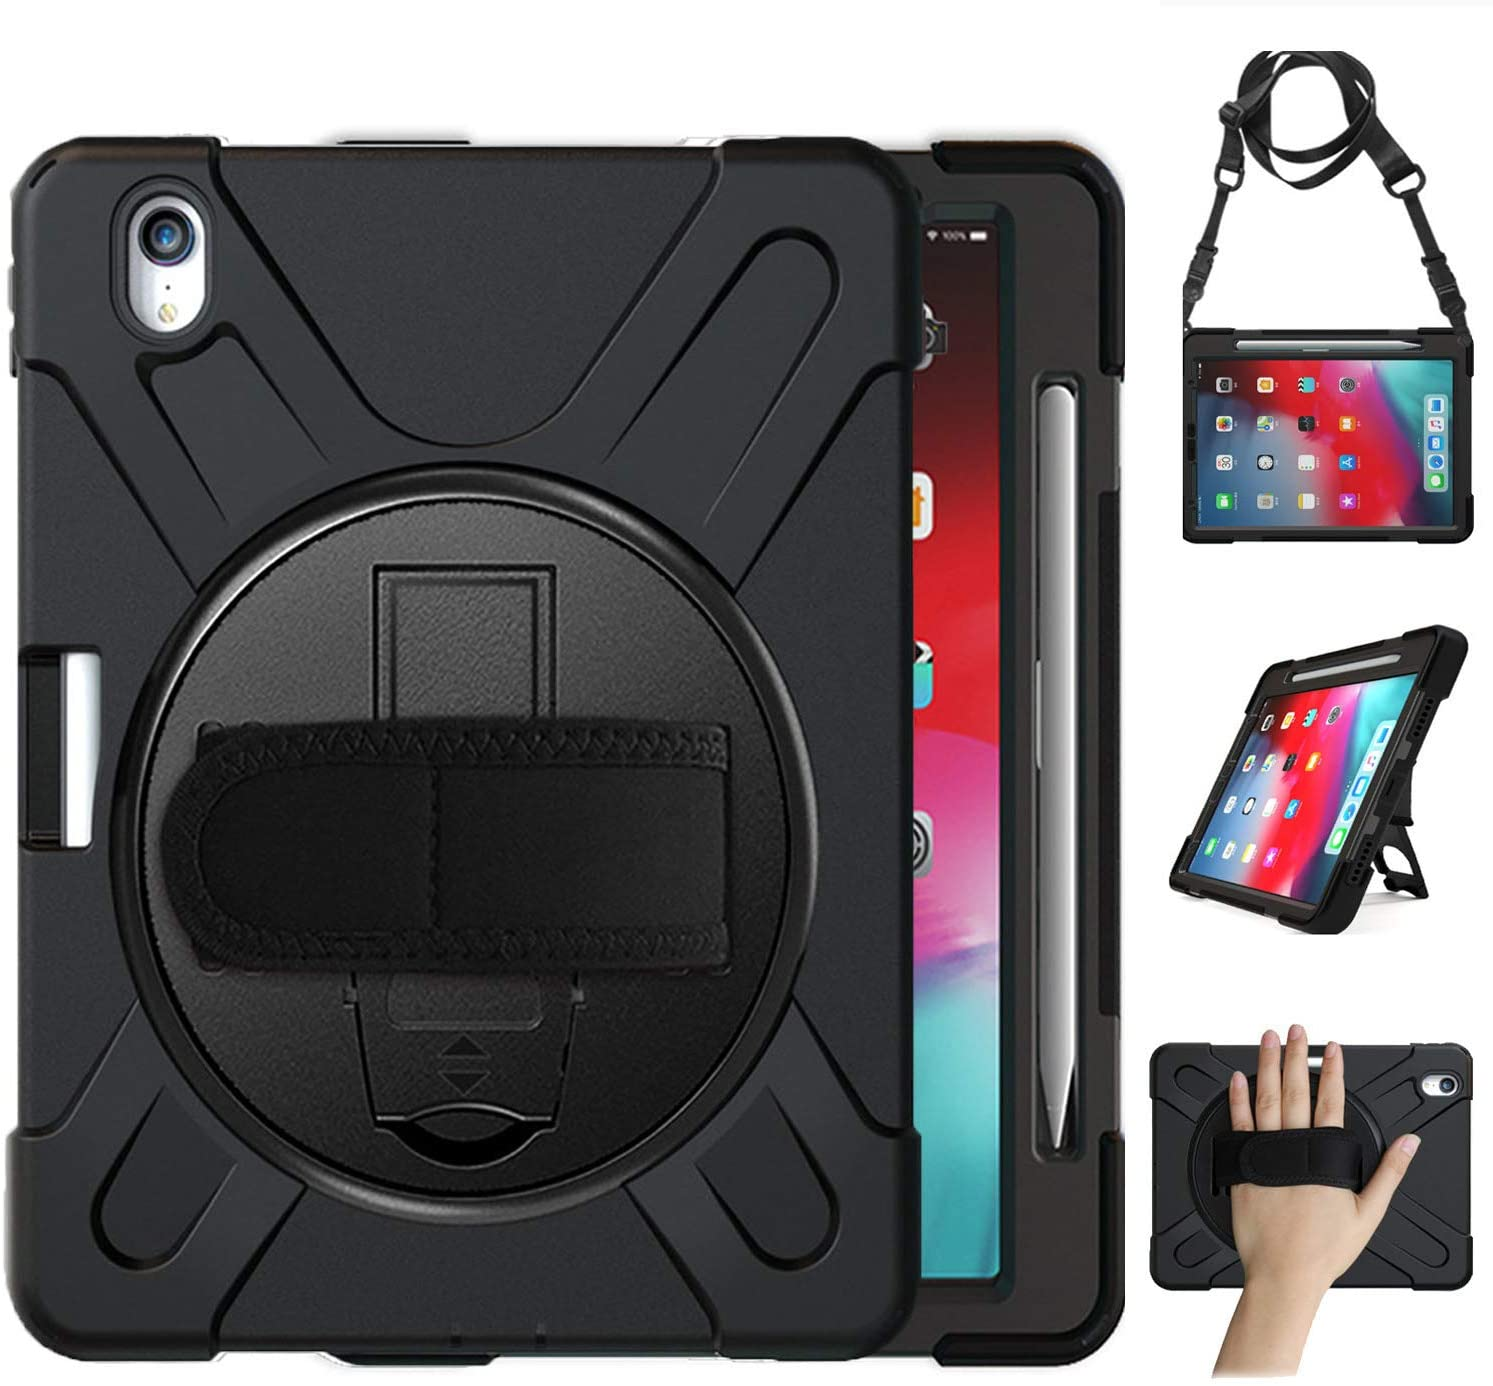 iPad Pro 11 Case 2018 with Pencil Holder, [Support iPad Pencil Charging] Herize Shockproof Rugged Protection Case Cover with Stand/Hand Strap/Shoulder Strap for iPad Pro 11 Inch 2018 – Black